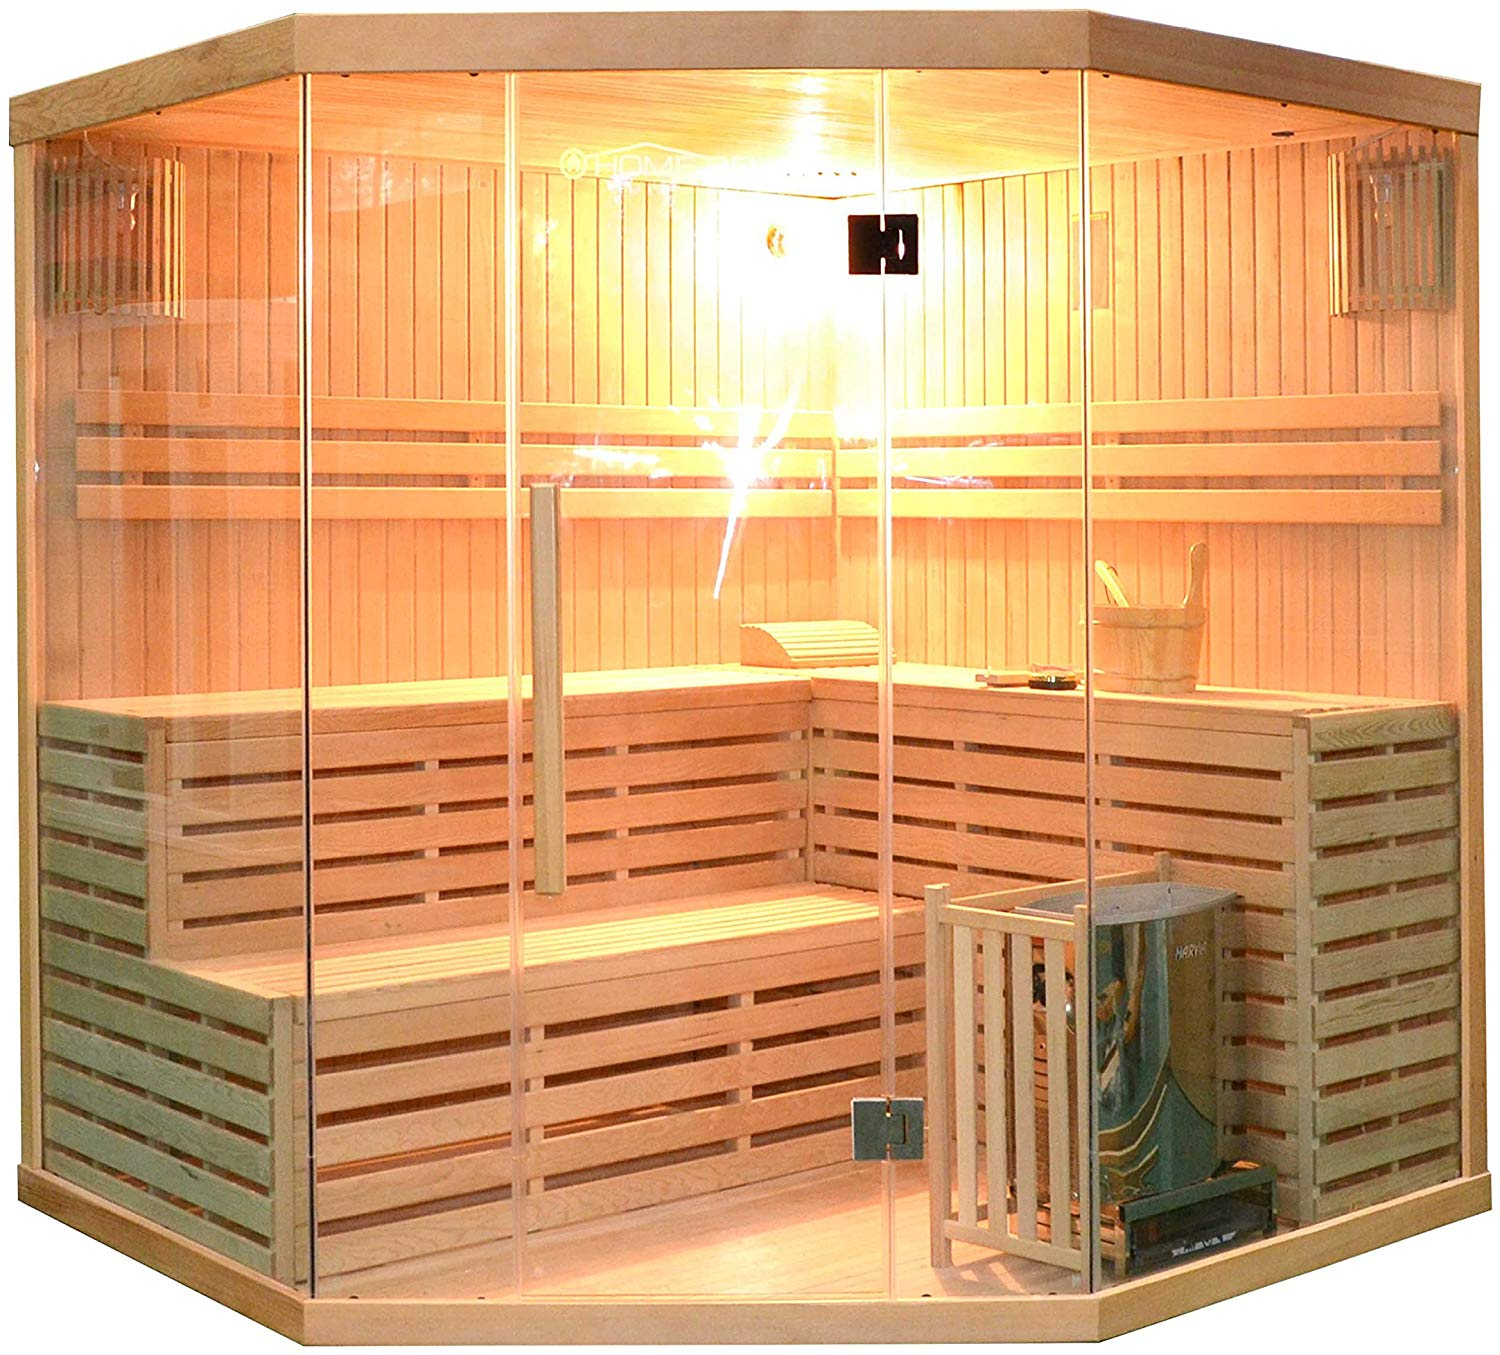 ALEKO SEA5JIU 6-Person Sauna